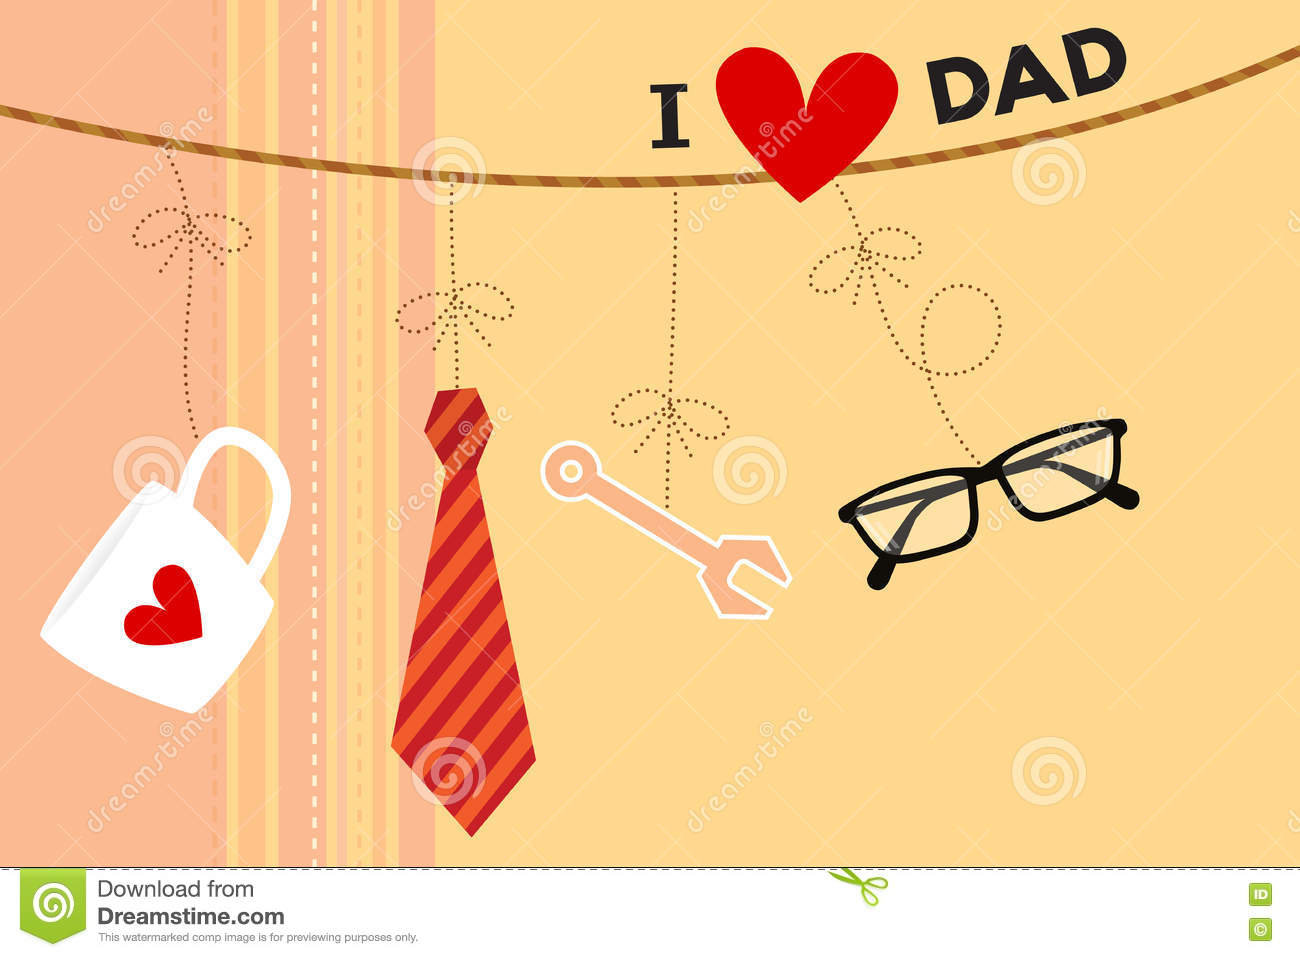 Fathers day card stock vector illustration of illustration 73378070 vector of greeting cards for fathers day including coffee cup necktie tool and glasses hanging and bound with rope on a beige color background m4hsunfo